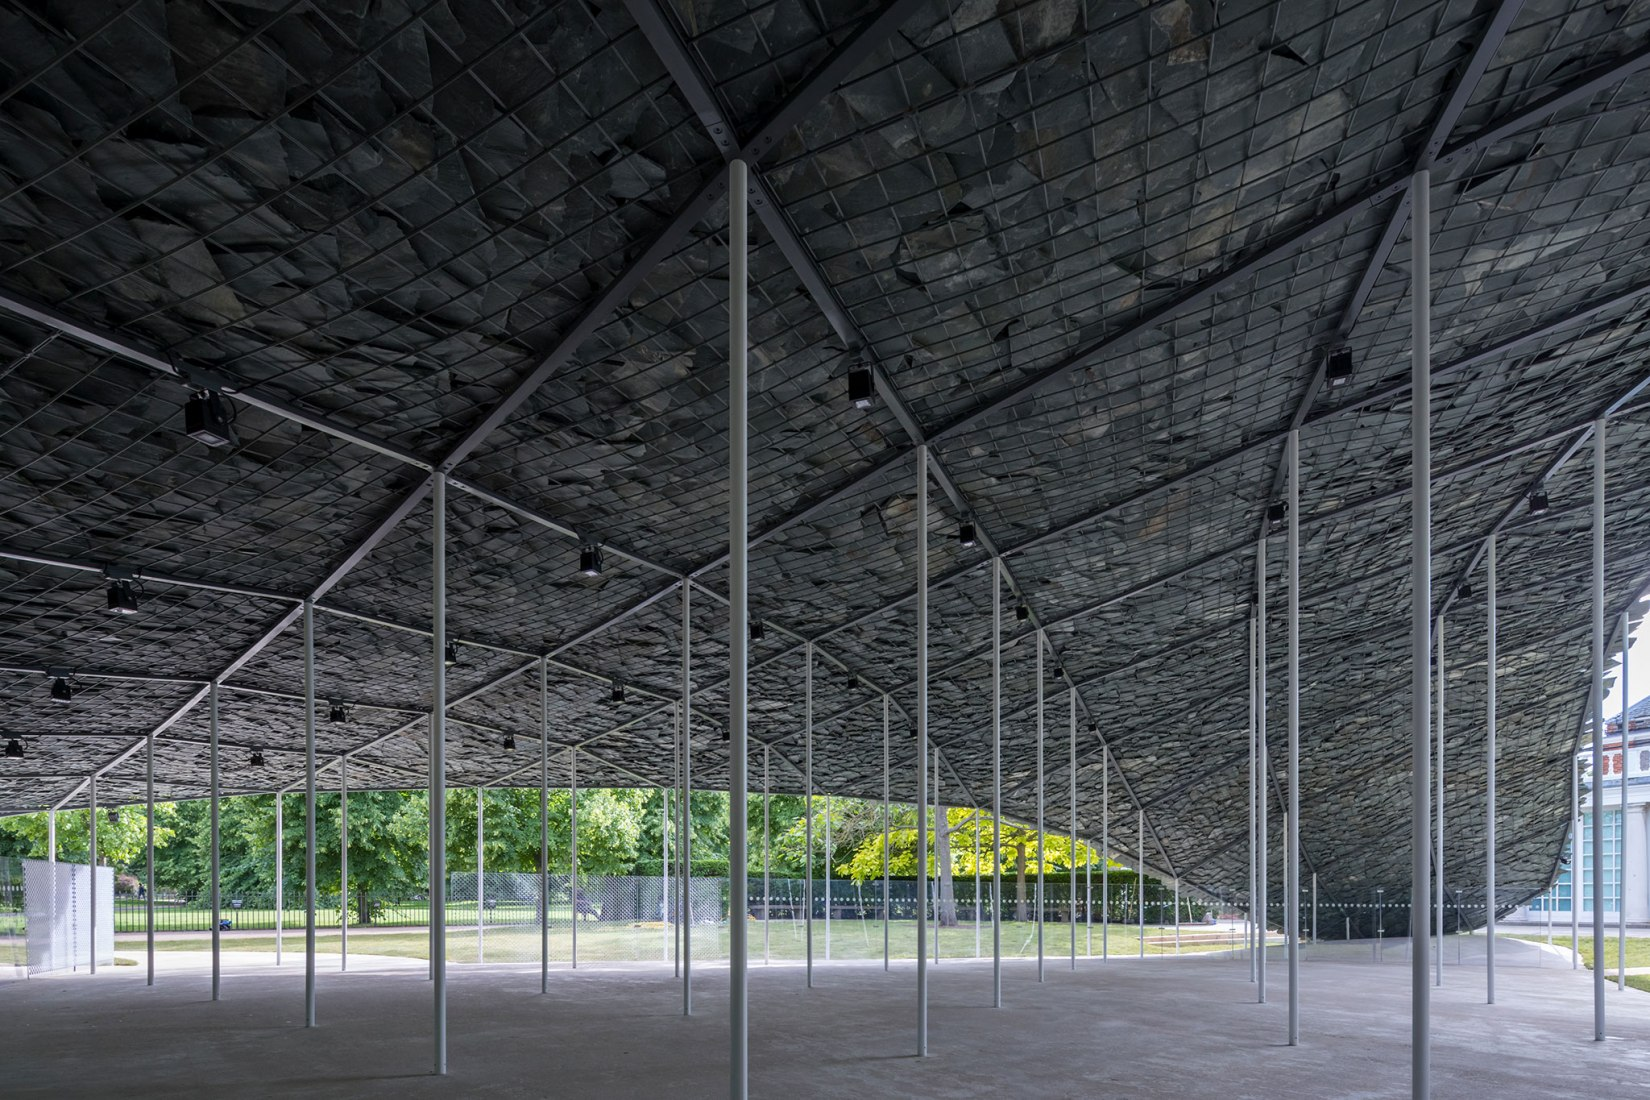 Serpentine Pavilion 2019 Designed by Junya Ishigami, Serpentine Gallery, London (21 June – 6 October 2019), © Junya Ishigami + Associates, Photography © 2019 Iwan Baan